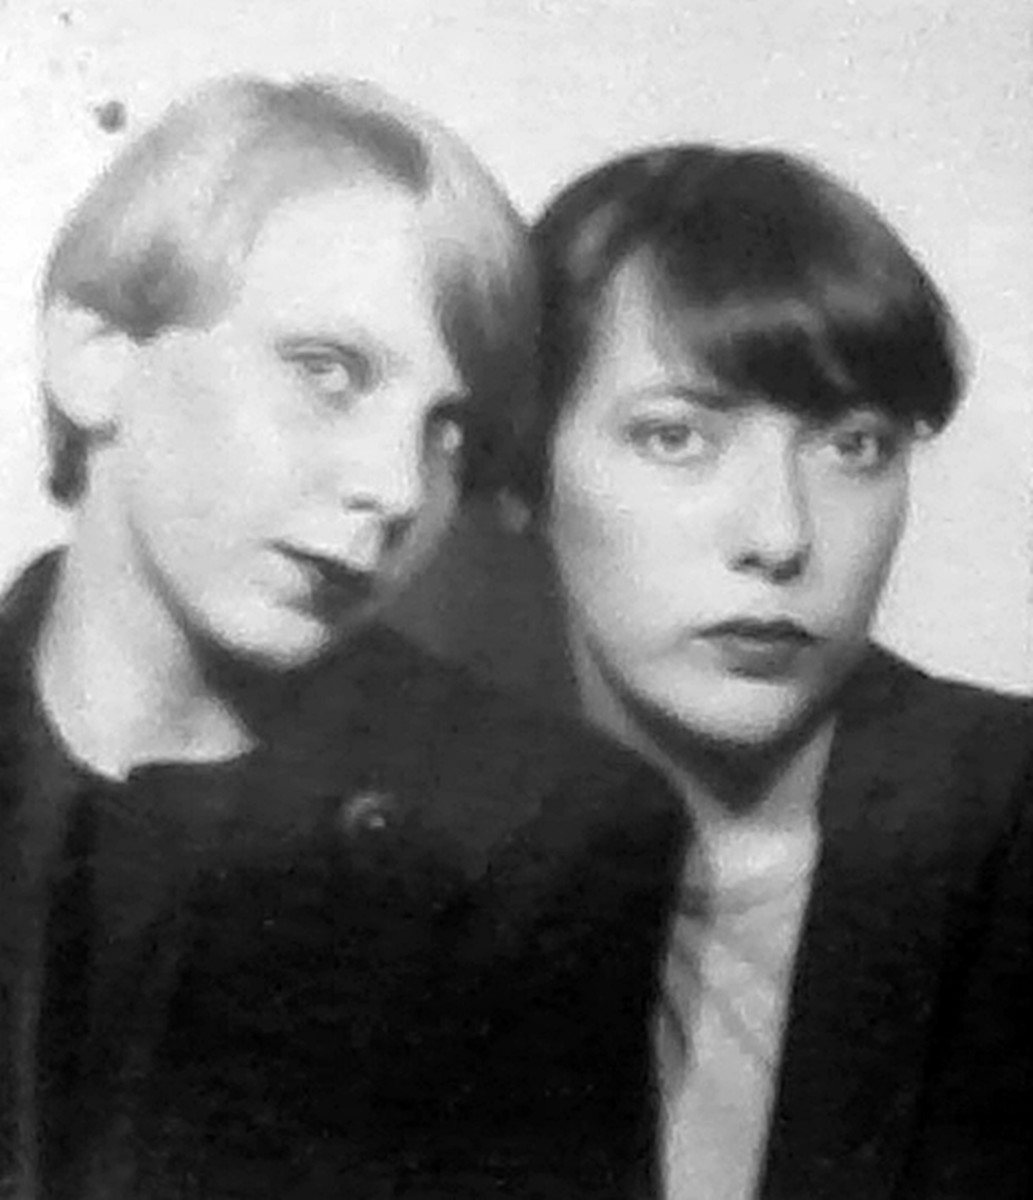 Pictured on the right, with a schoolfriend, I was in the fourth form when I had my long hair cut off. I had the sides of my hair cropped very short, but the top left longer.